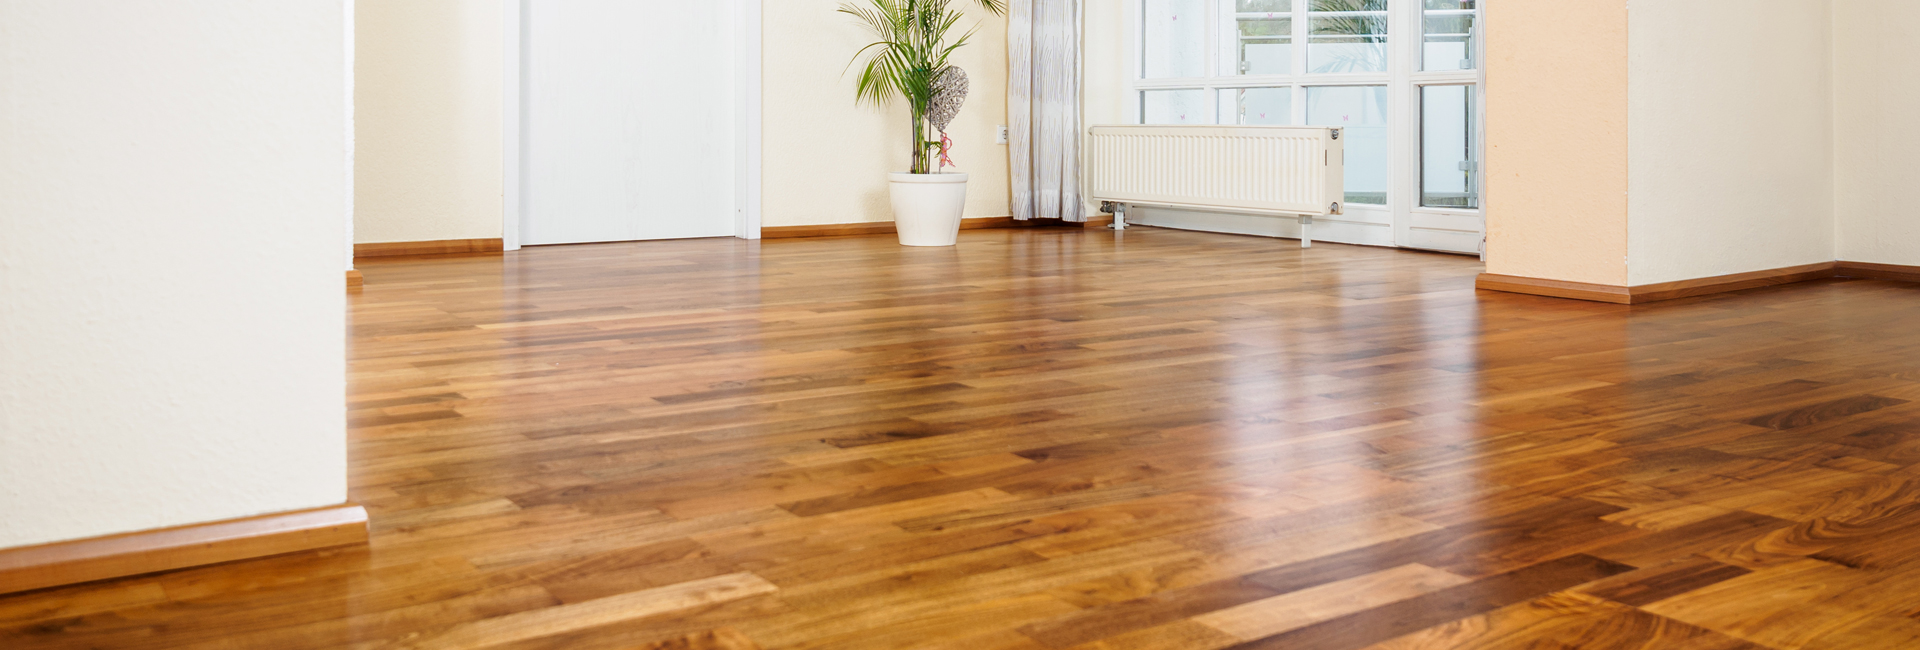 Vitrifier Un Parquet Ancien Gallery Of Parquet With